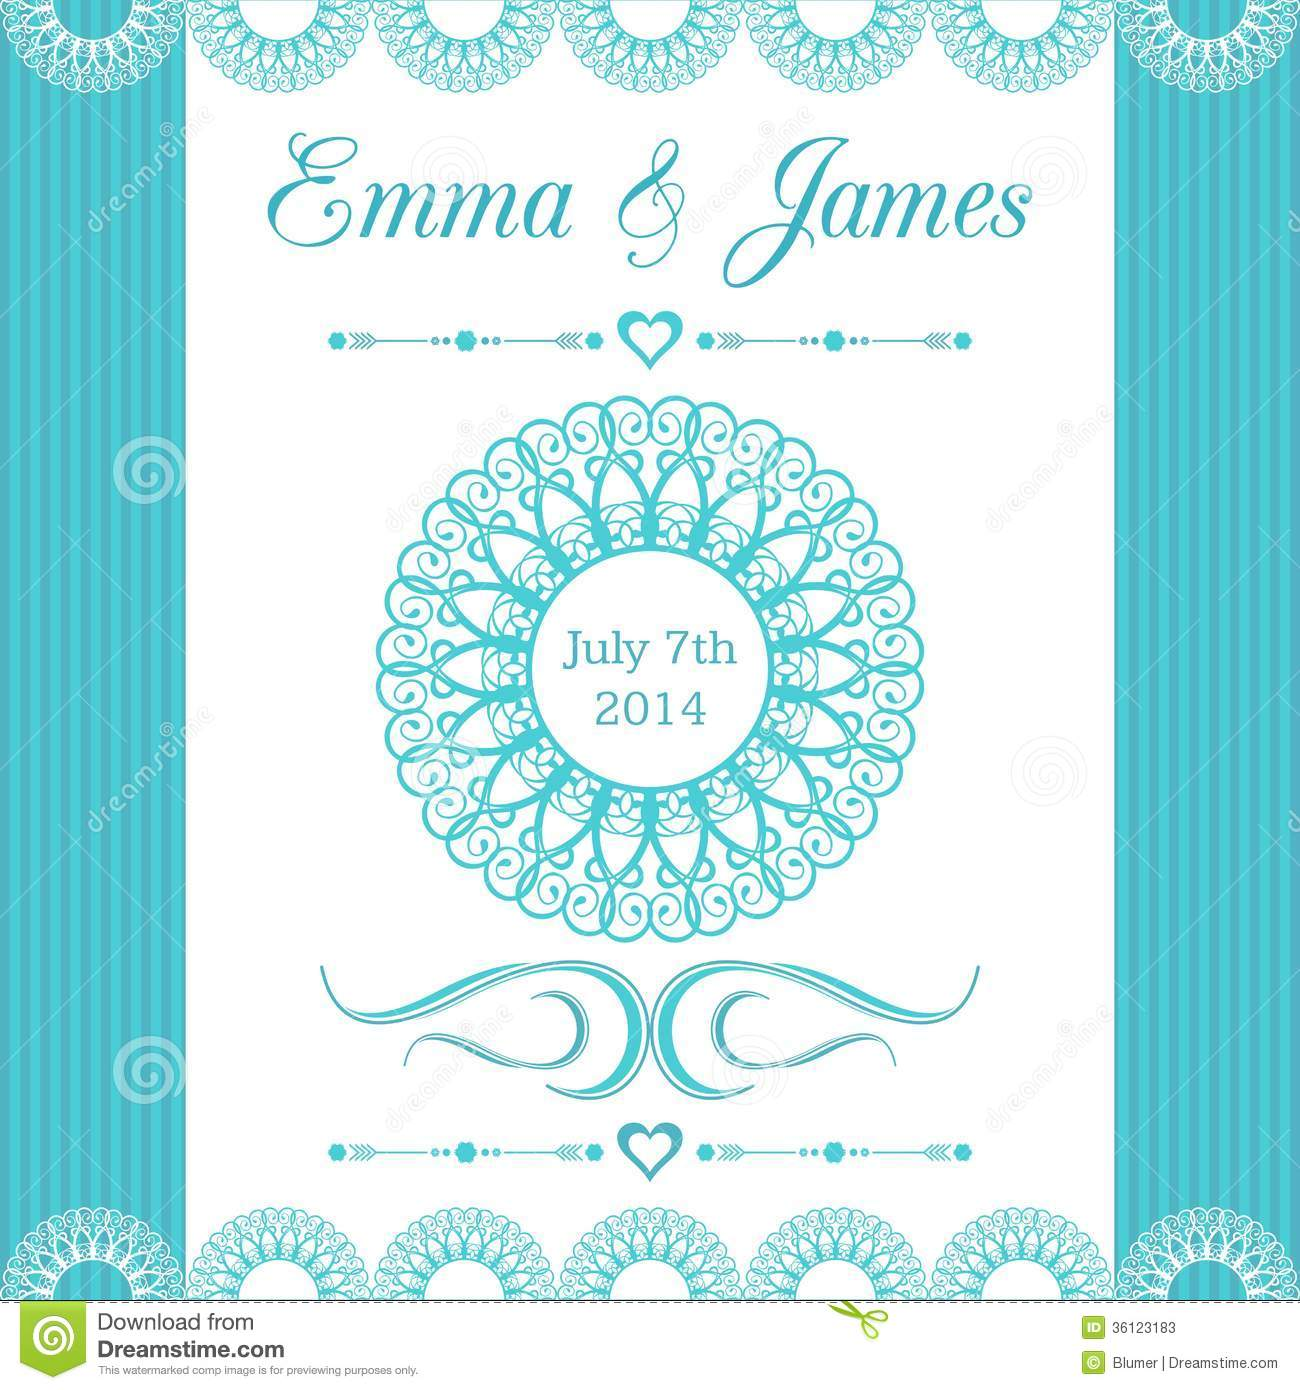 Wedding ornaments 2014 - Royalty Free Stock Photo